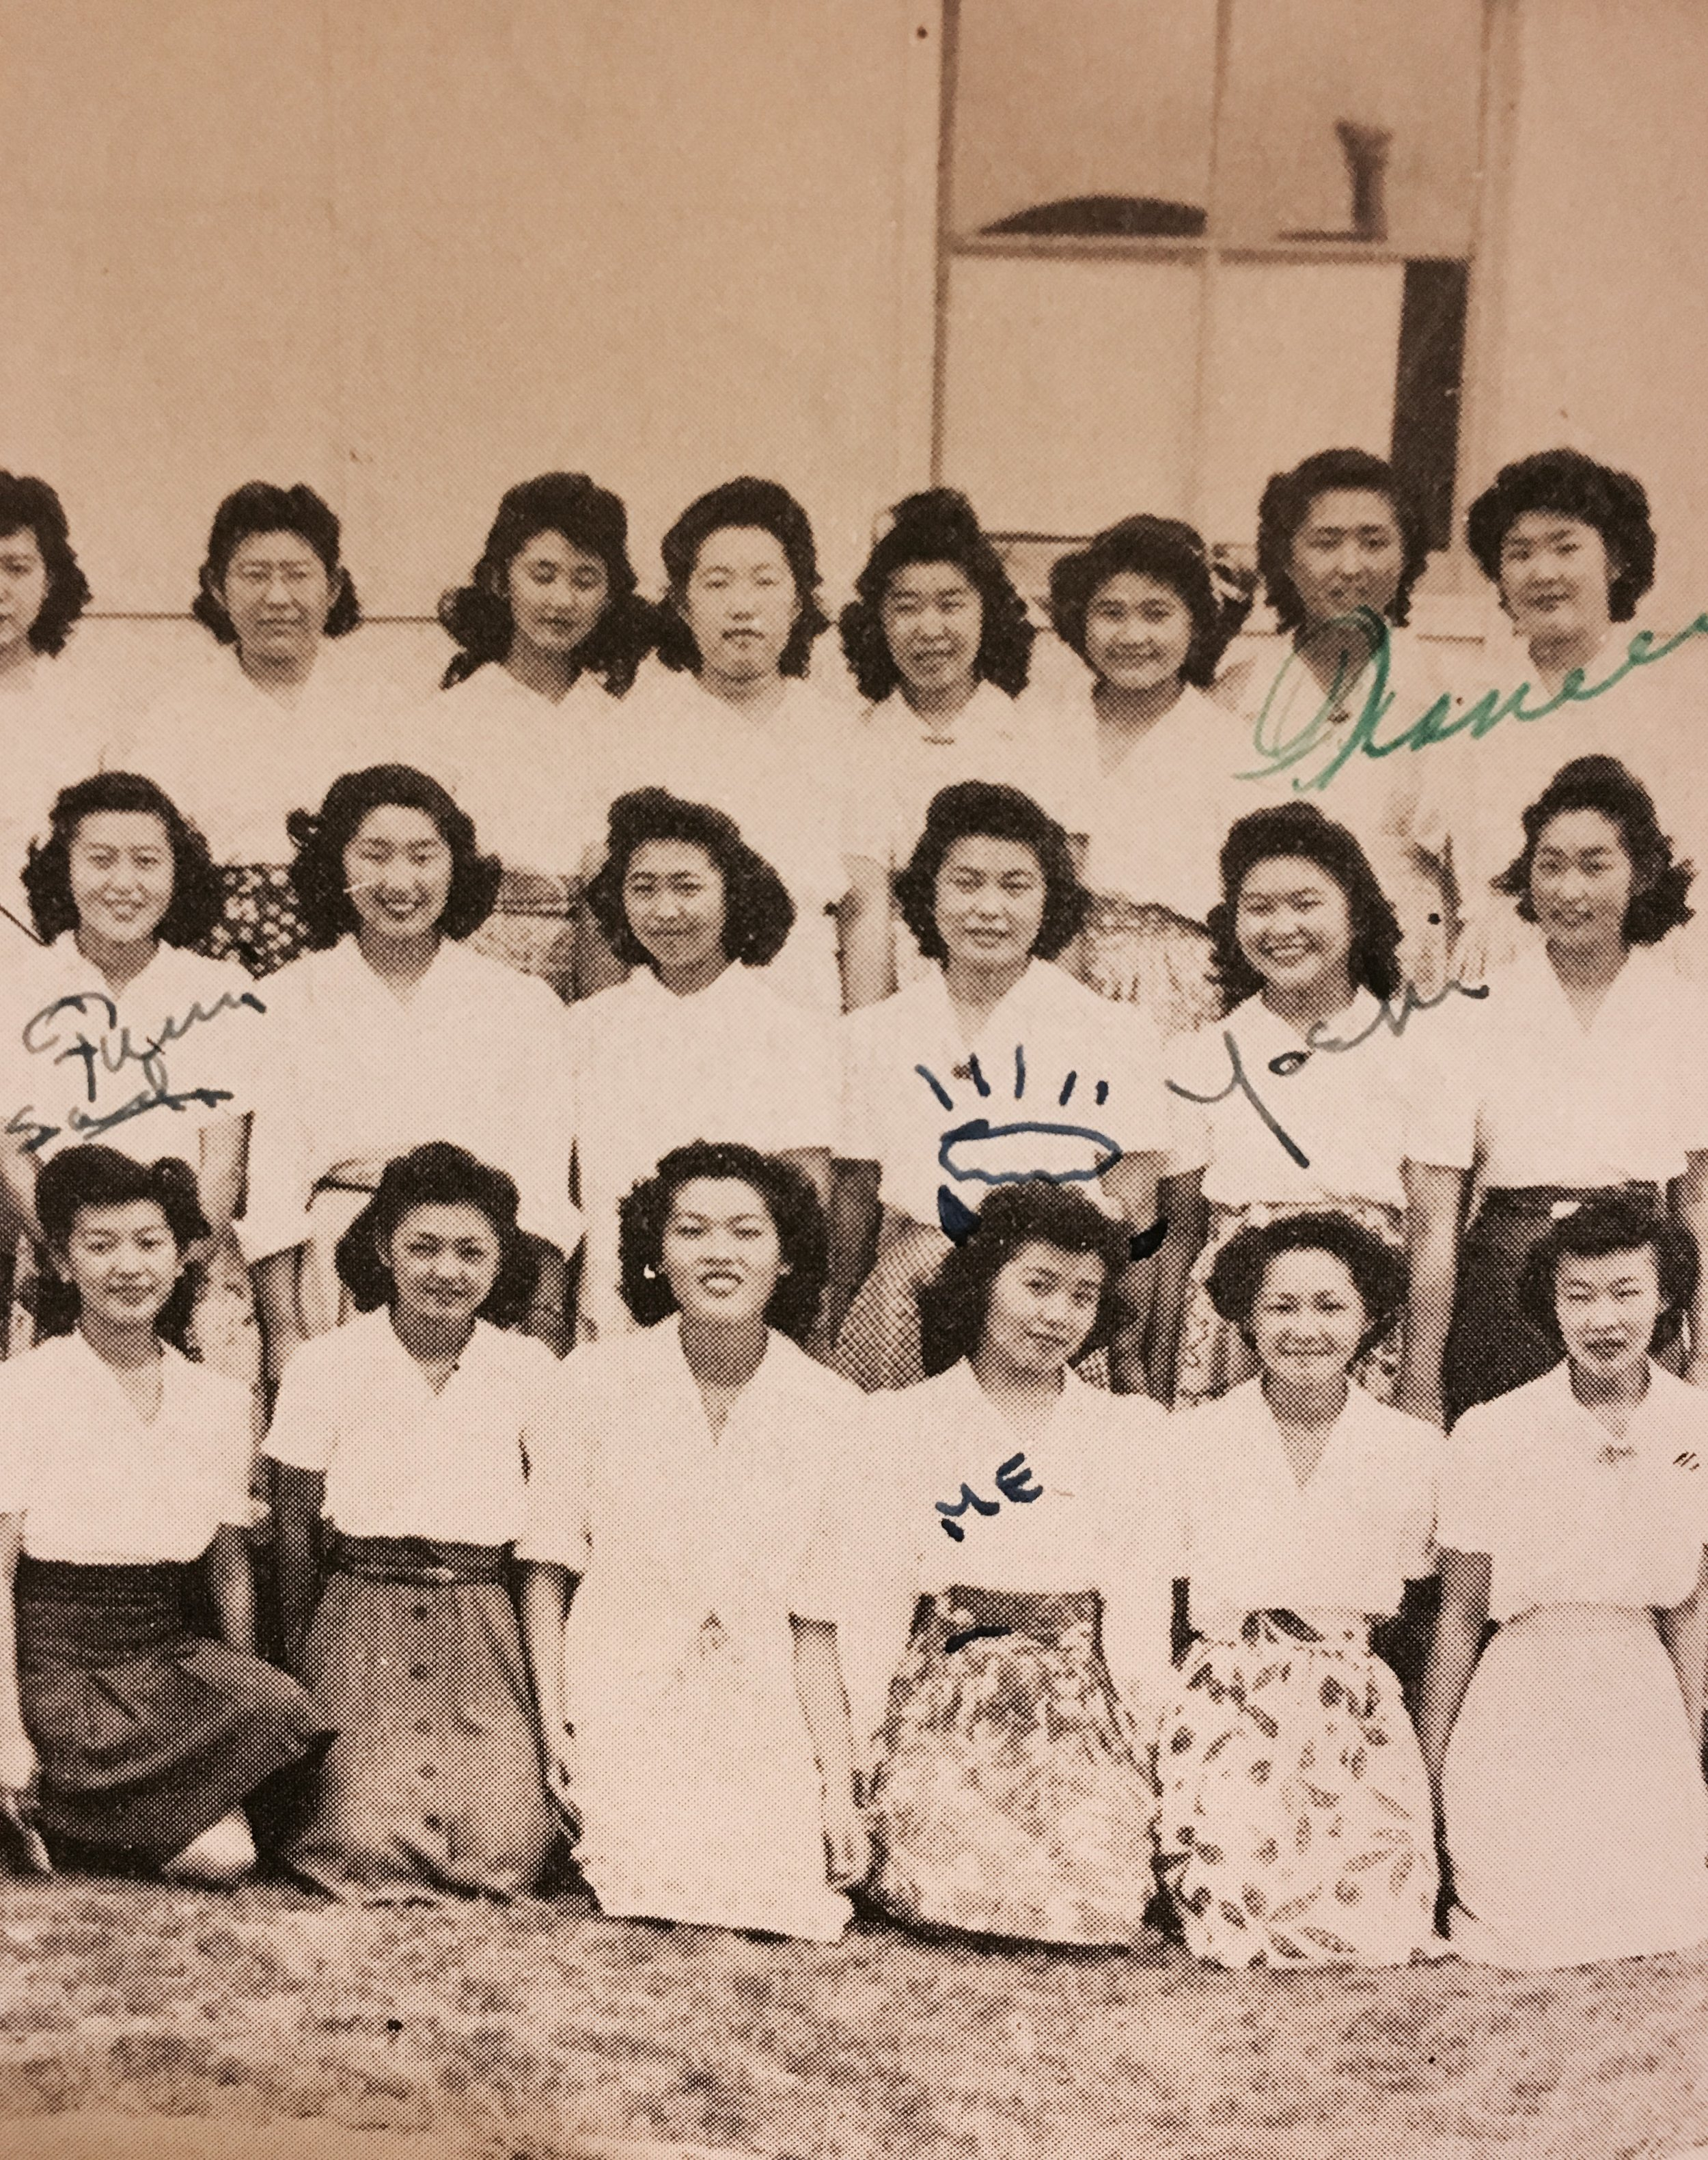 A high school photo of the Girl's League in Gila River. Alice is on the bottom row, third from left.